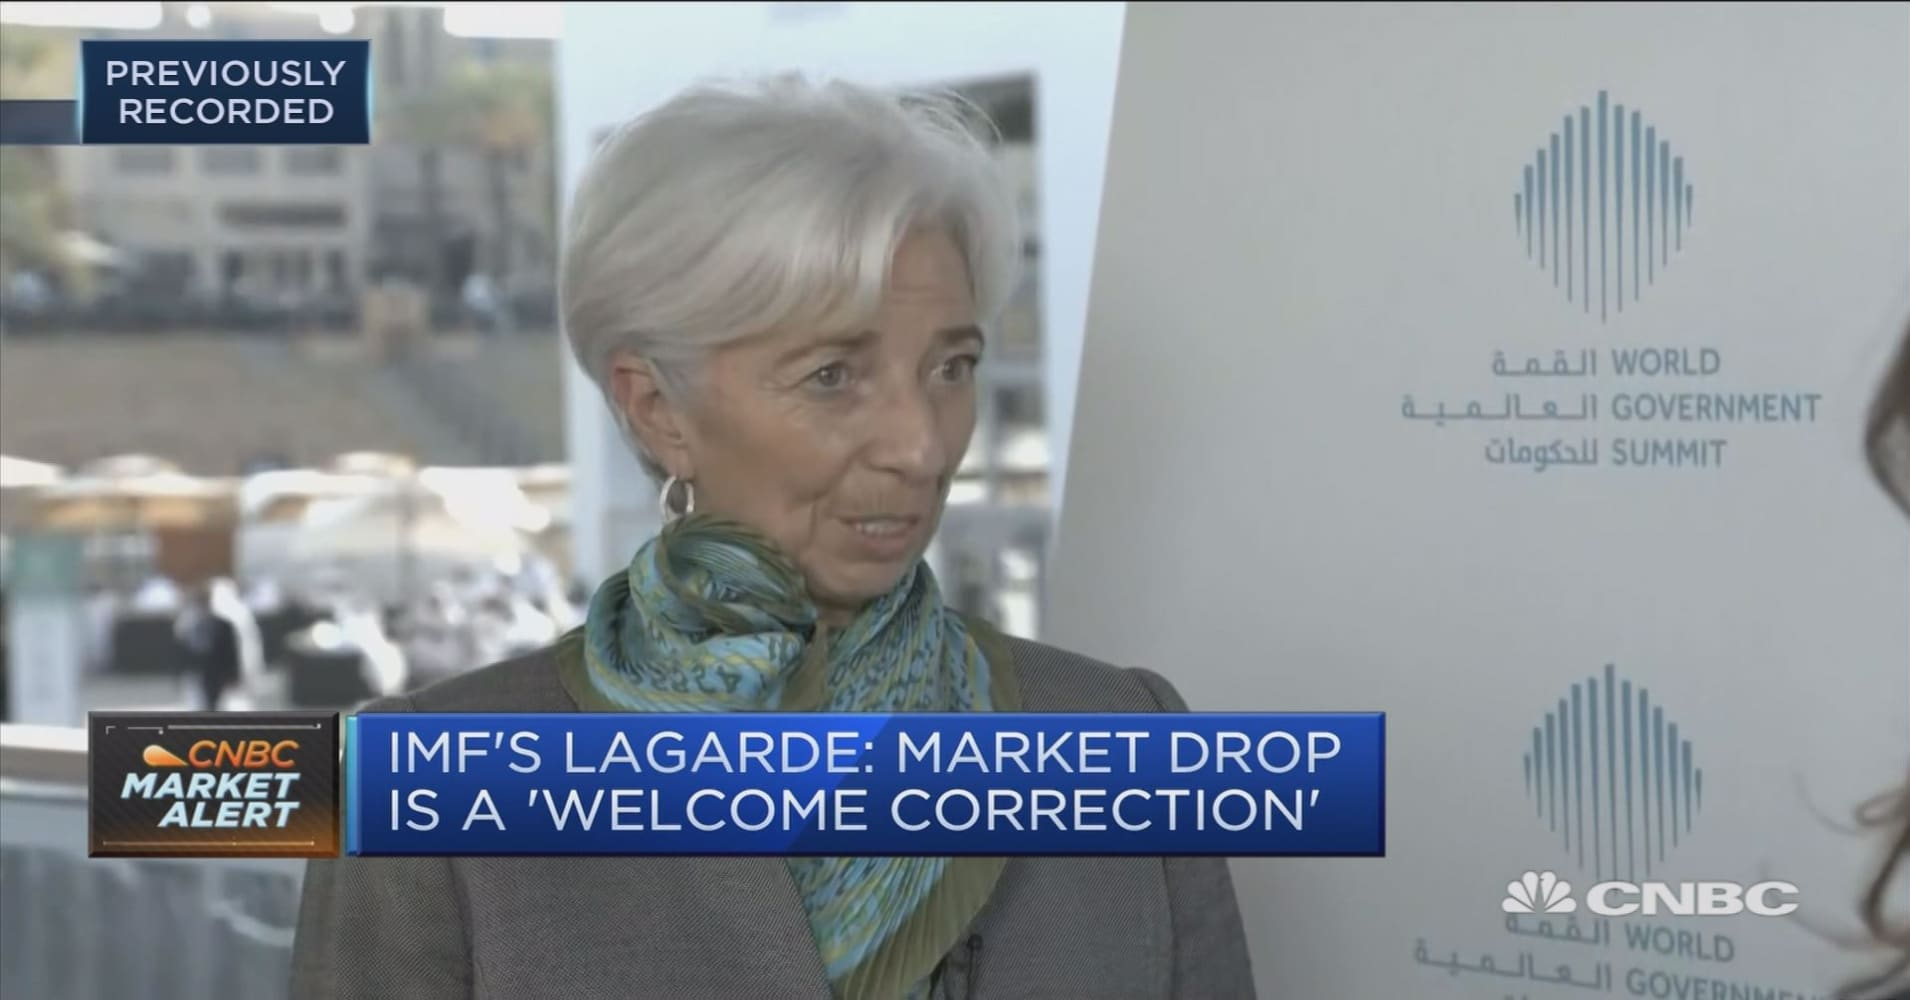 Market correction was welcome, says IMF's Lagarde